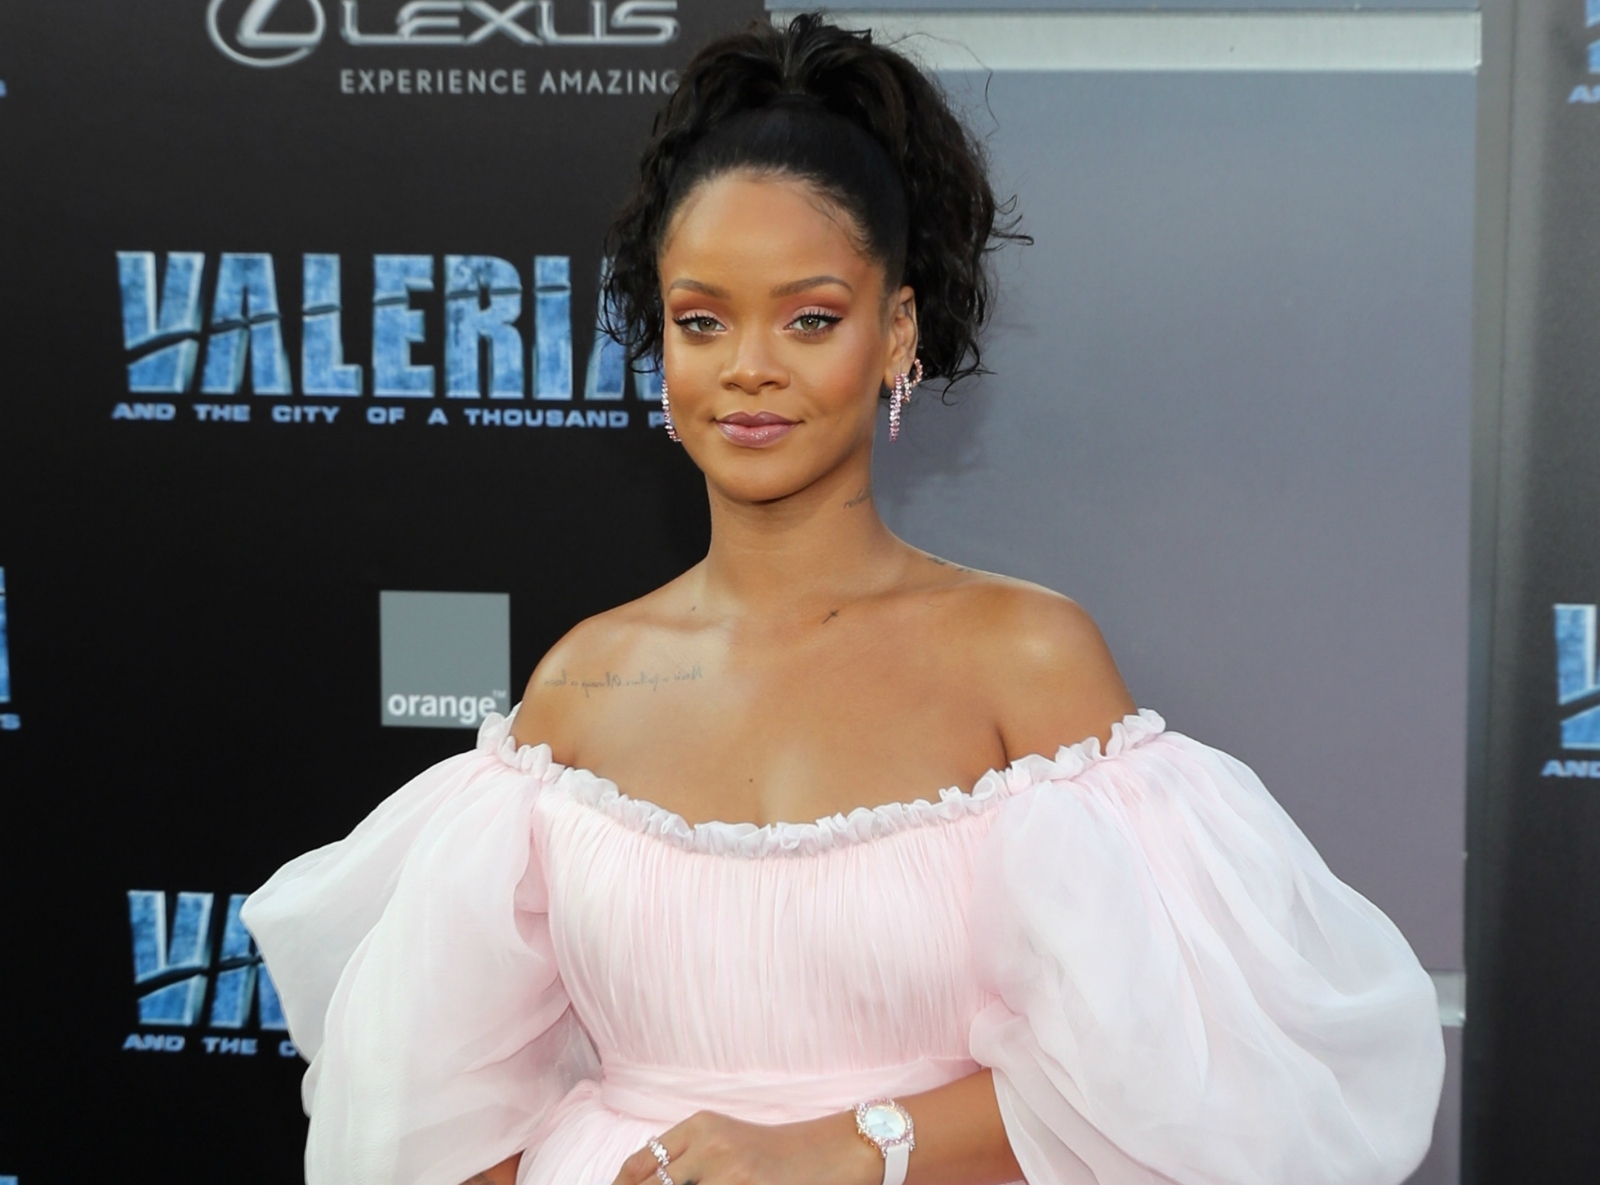 Rihanna's Embracing Her Curves, and Why You Should Too